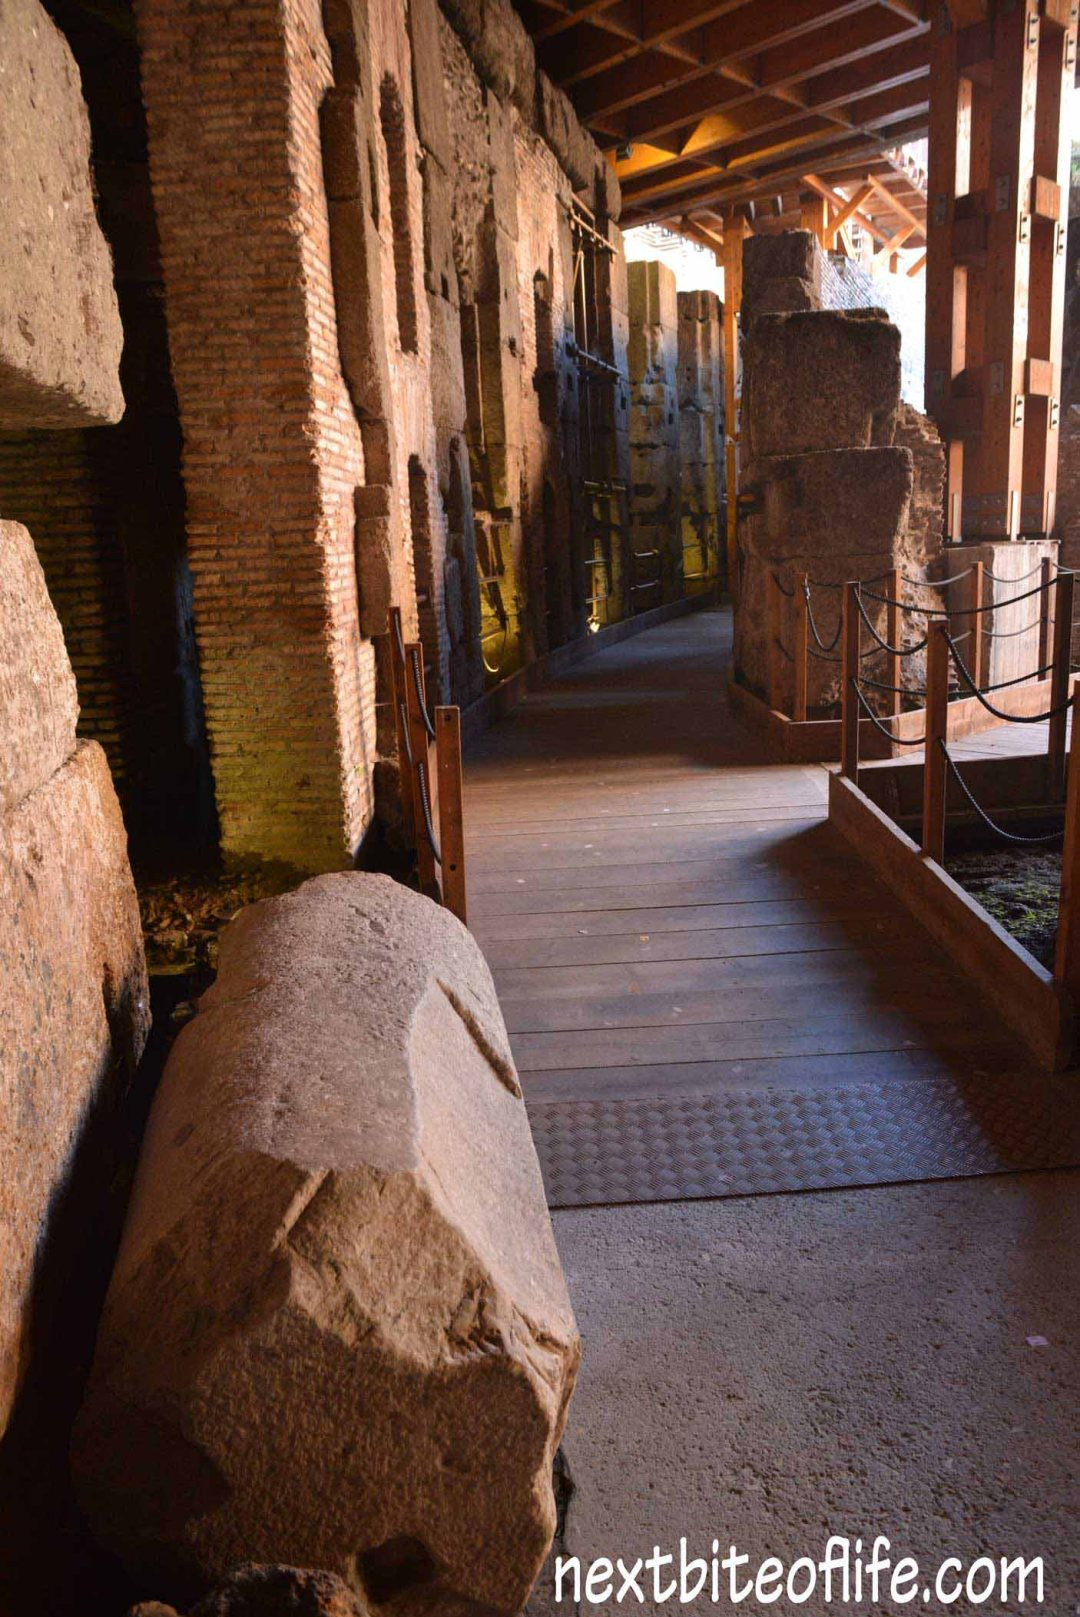 Colosseum Rome underground with columns and pillars